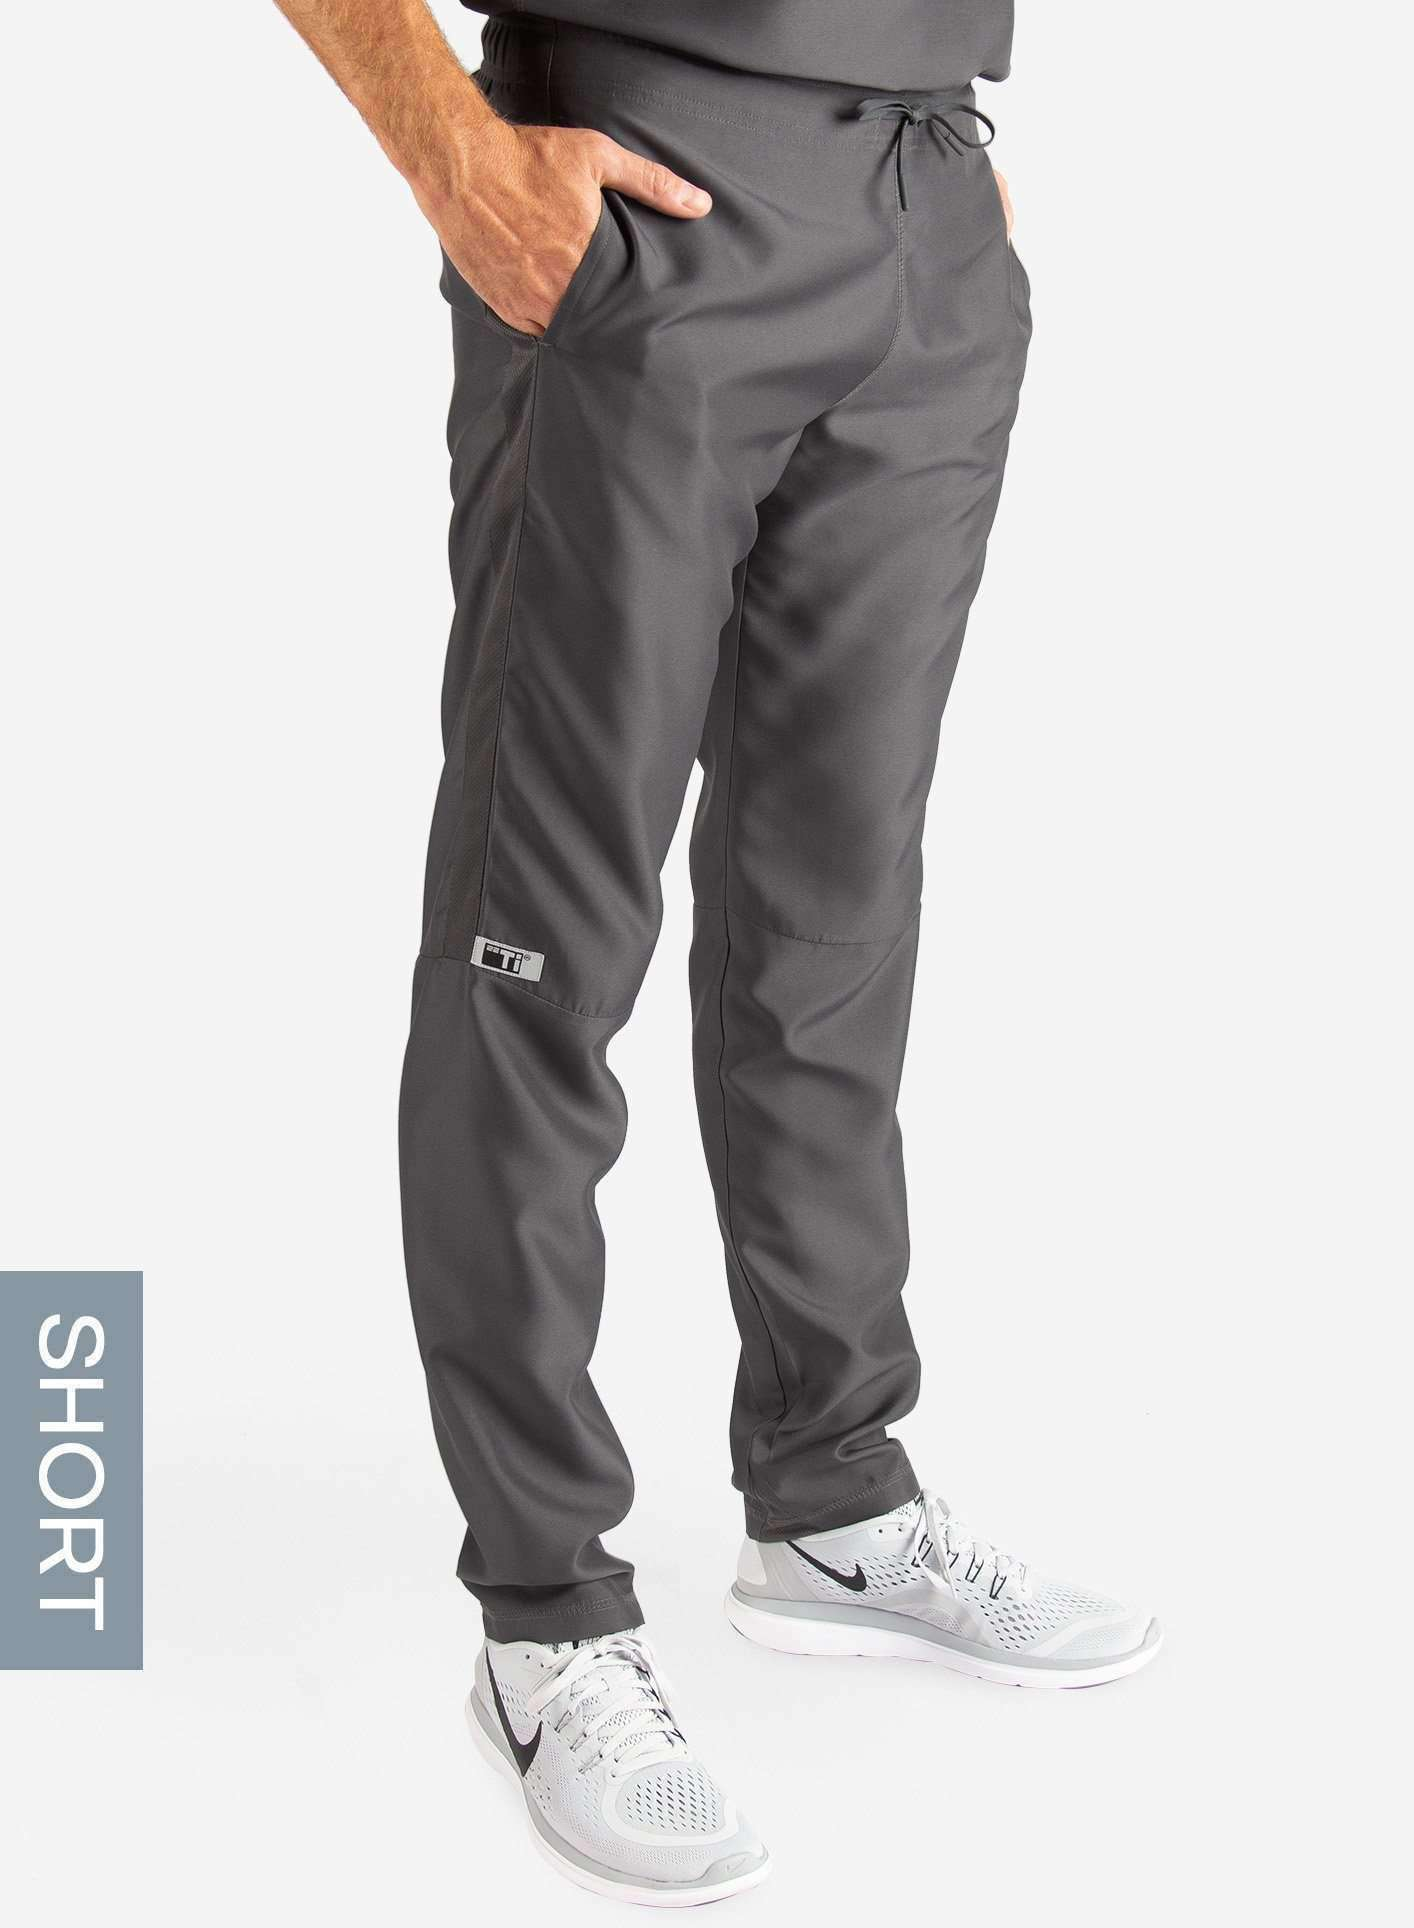 Men's Short Slim Fit Scrub Pants in Dark Grey